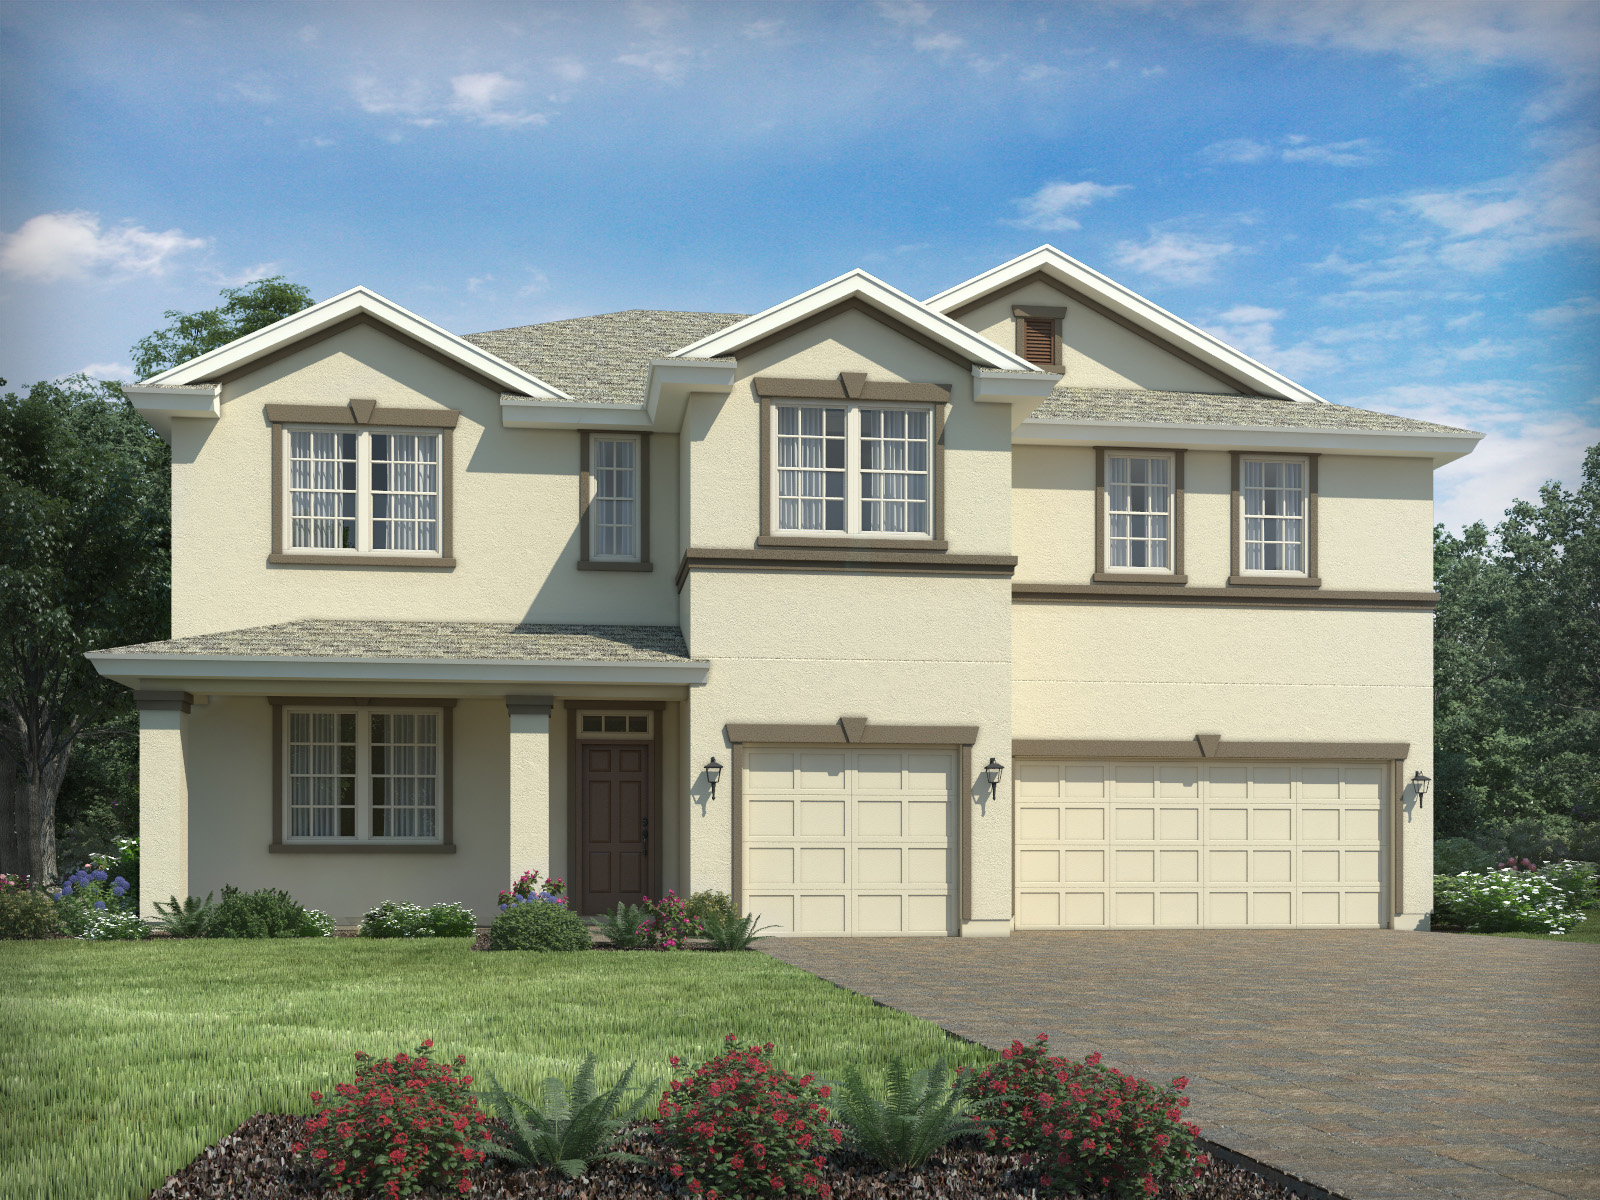 biltmore model u2013 5br 4ba homes for sale in winter garden fl